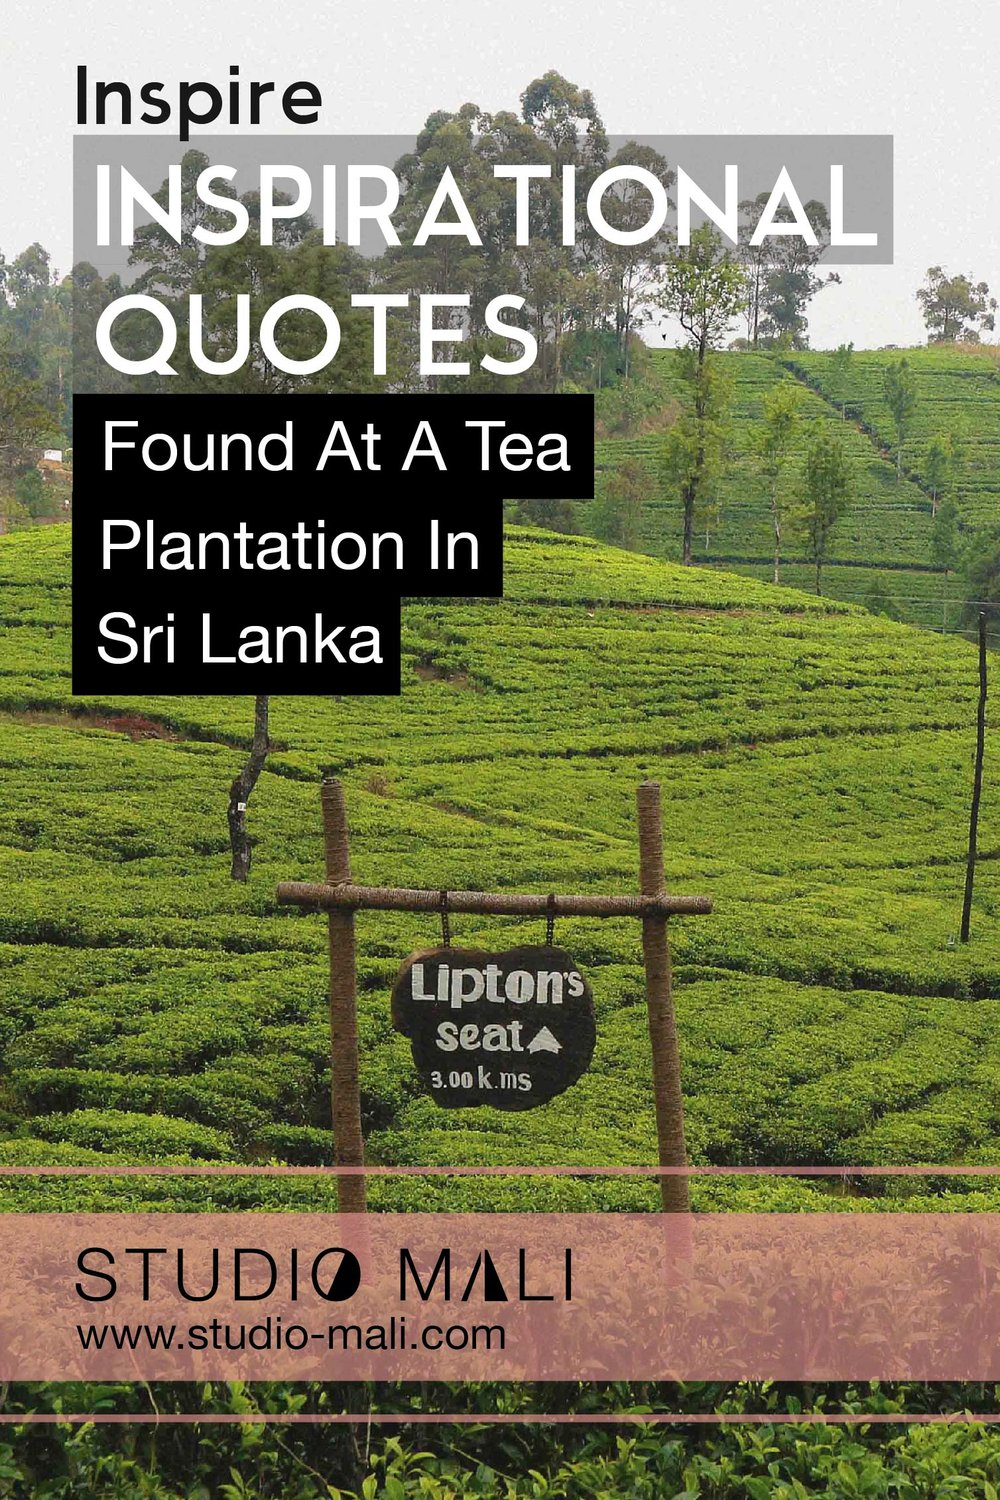 Inspirational Quotes Found At A Tea Plantation In Sri Lanka, by Studio Mali